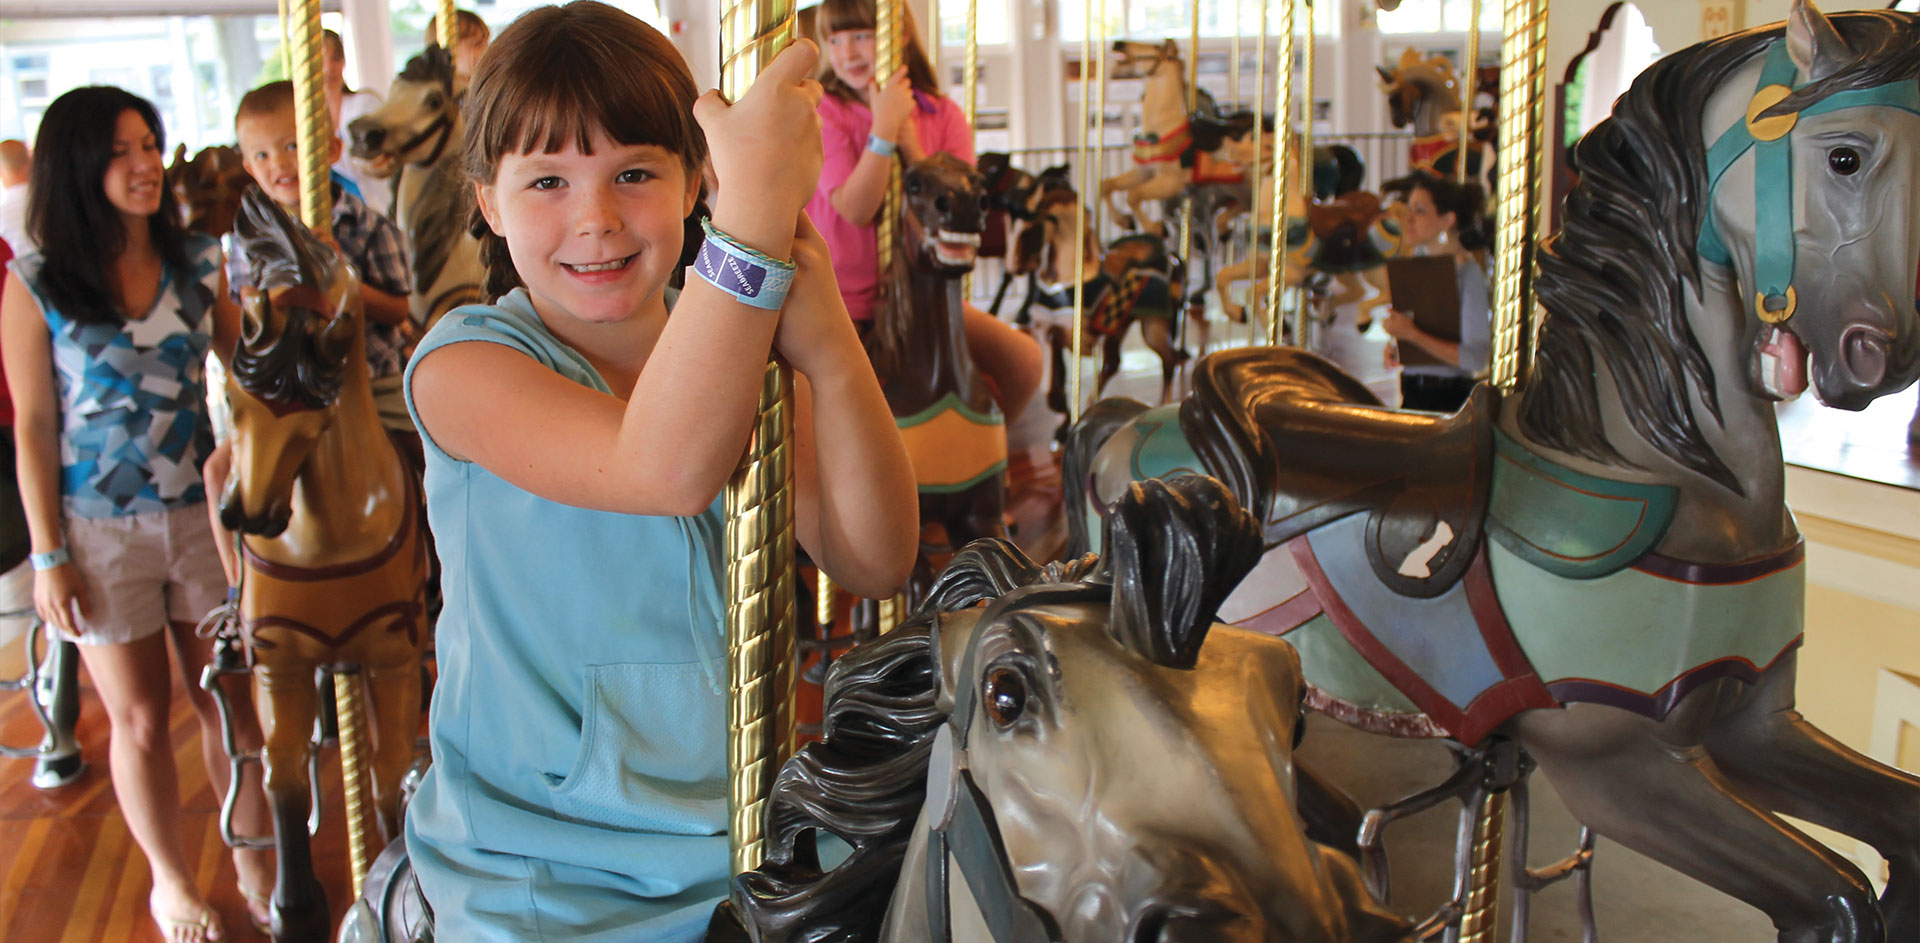 Girl riding carousel ride.